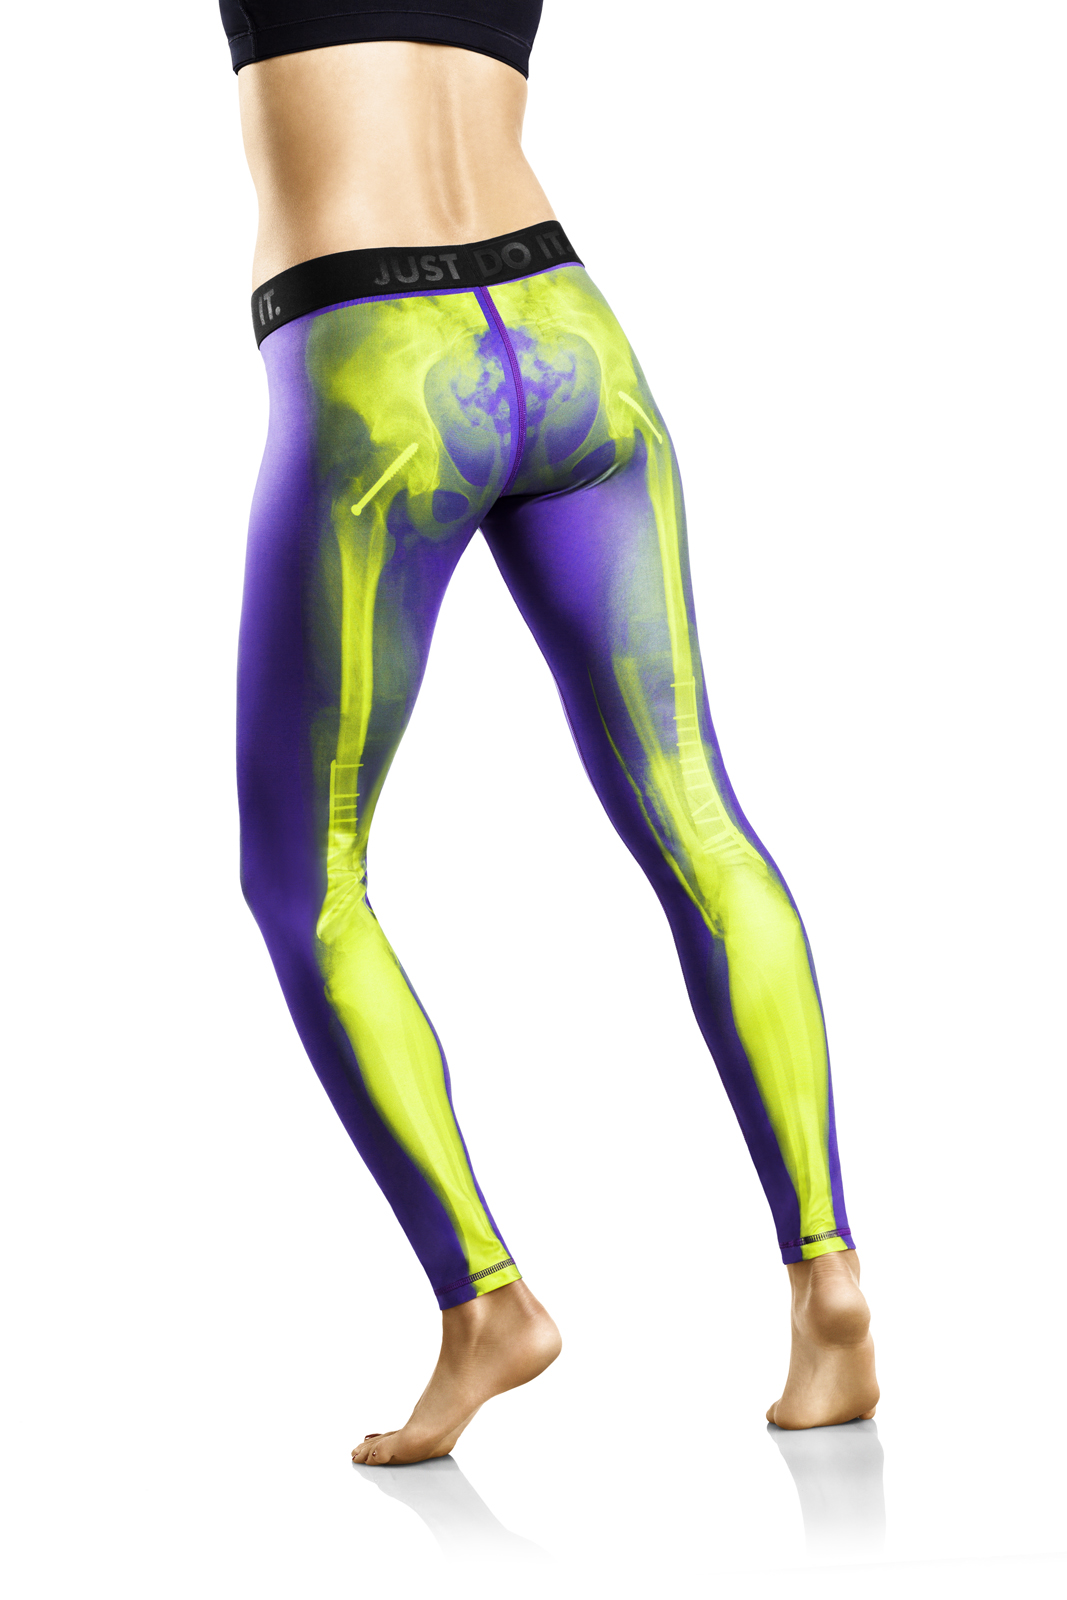 Nike's Exclusive Print Tight Shows What Women Are Made Of ...